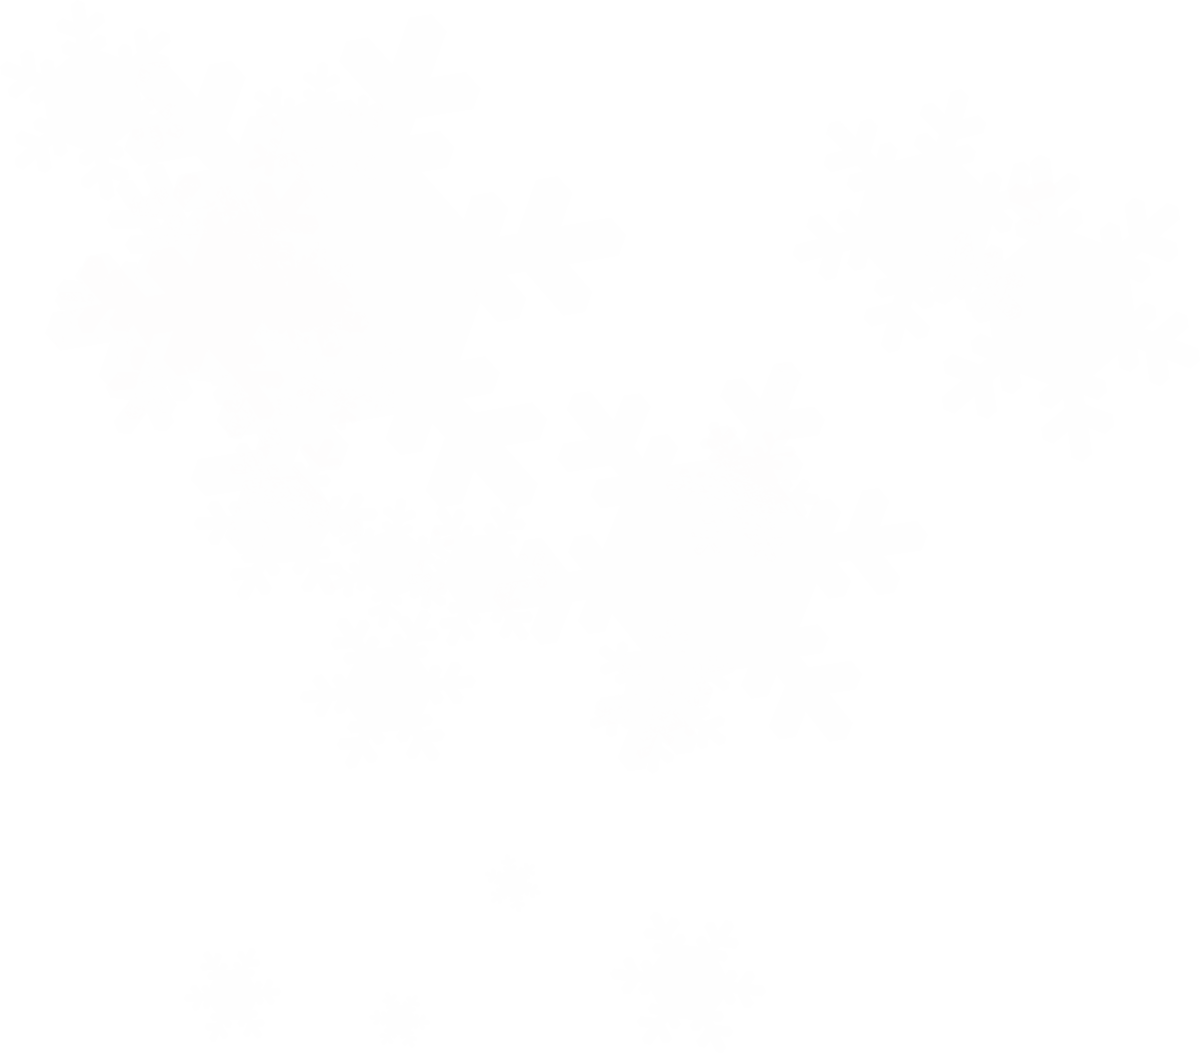 Snow particles png. Snowflakes transparent images all